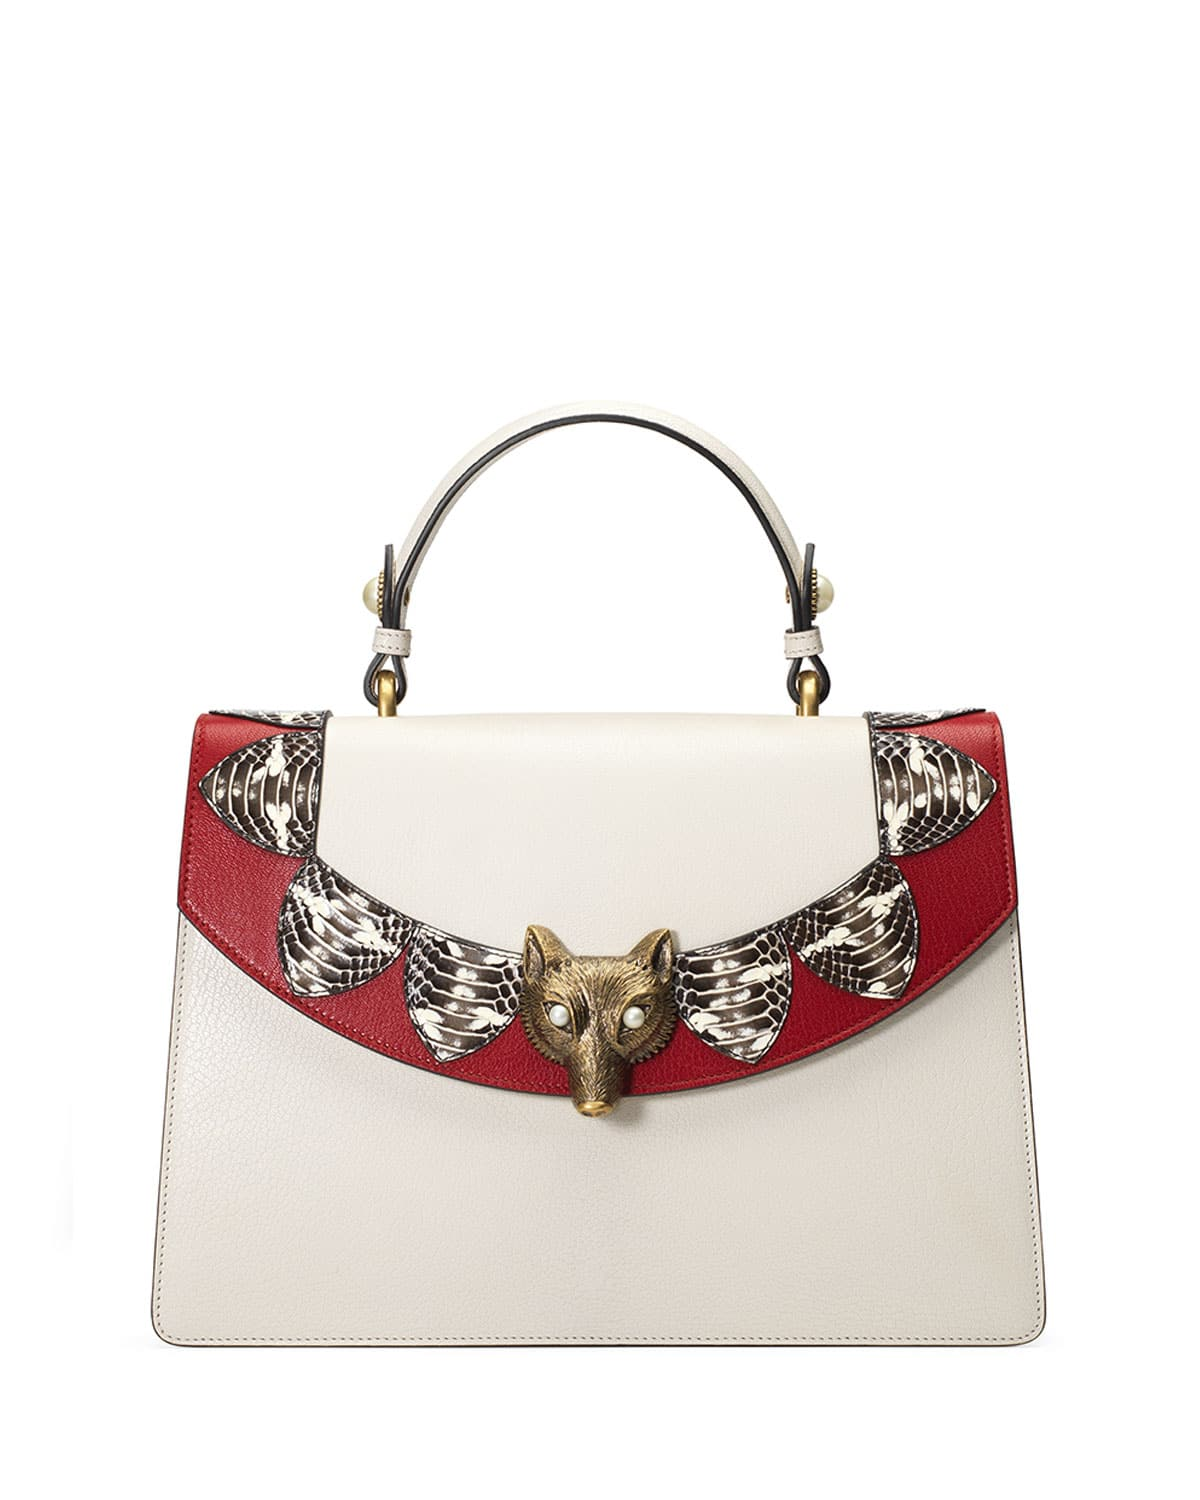 gucci bags price list. gucci white/red loved broche top handle bag bags price list